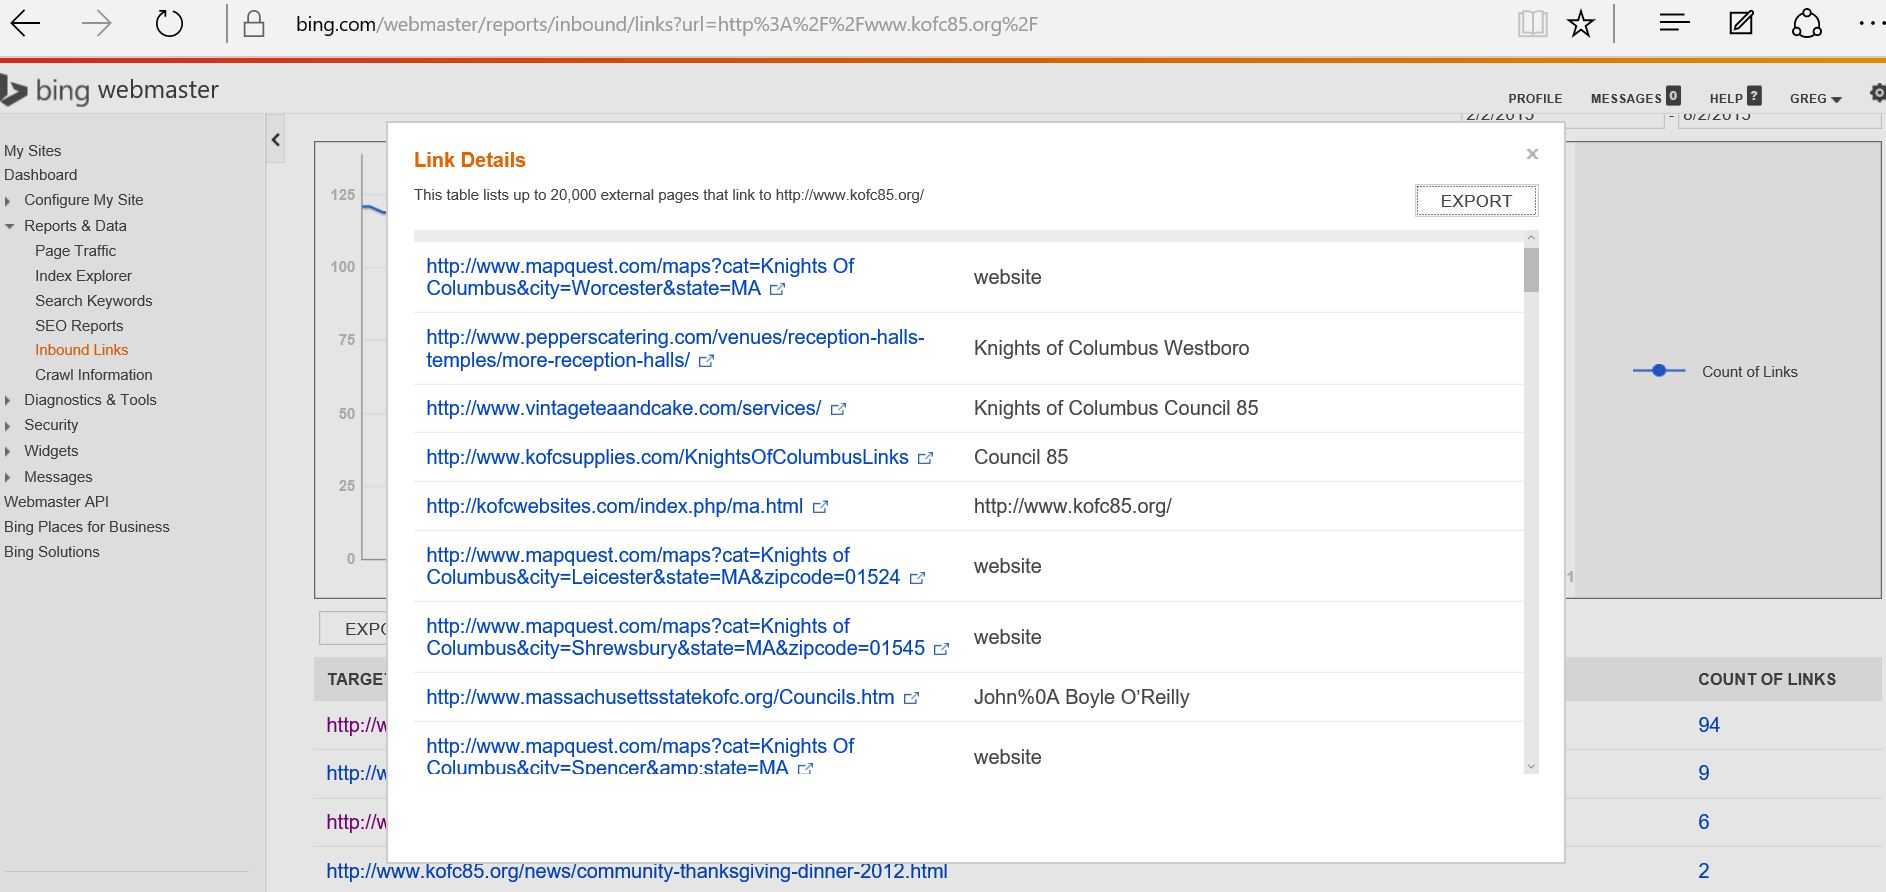 Specefic Links to a site in Bing Webmaster Tools